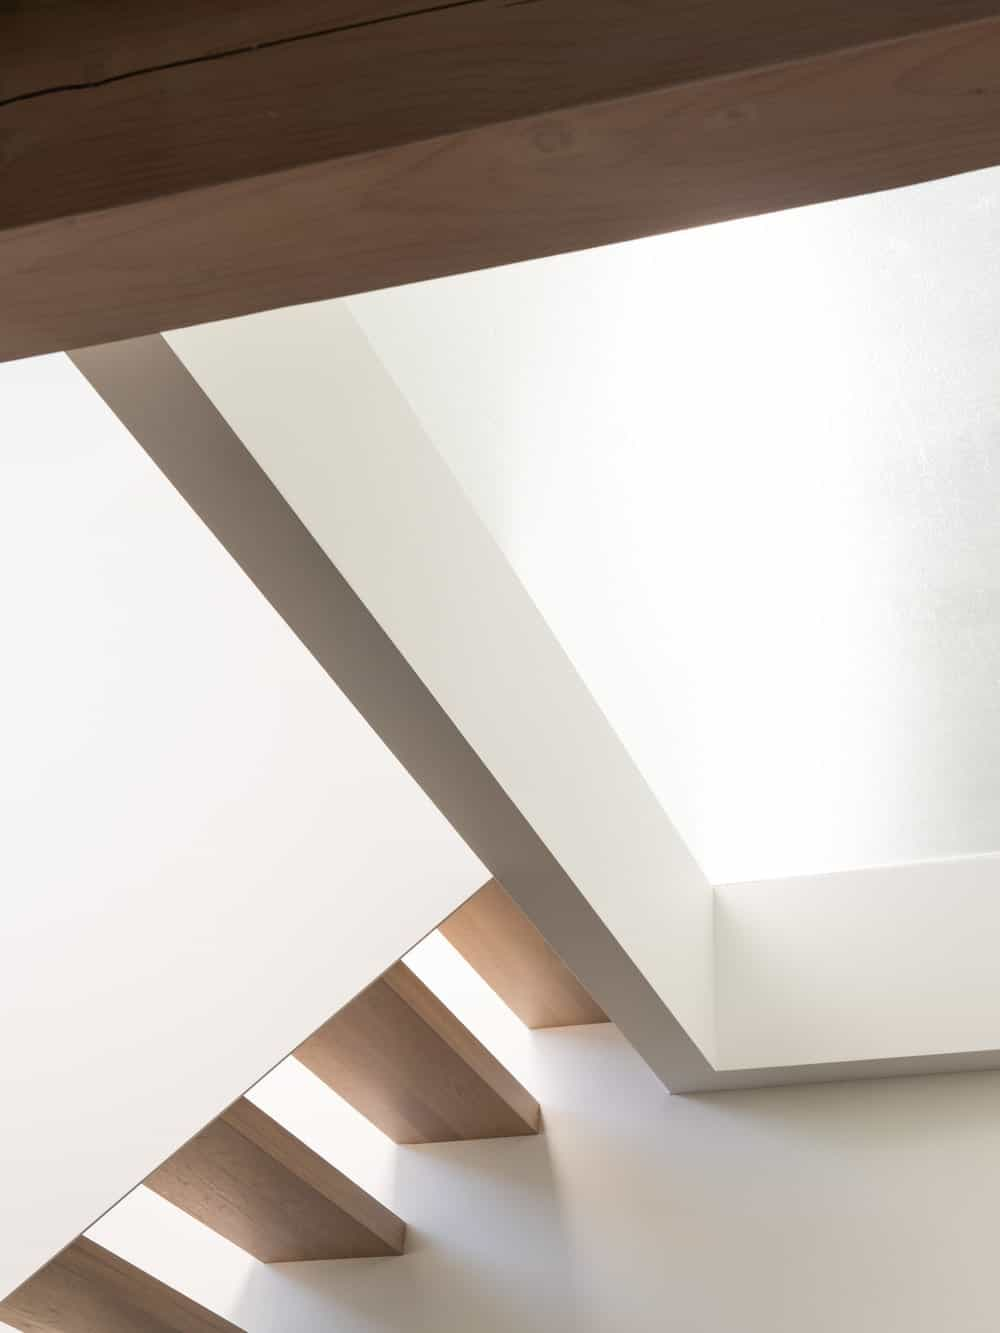 This is a closer looka t the bright white coffered ceiling above the staircase landing.